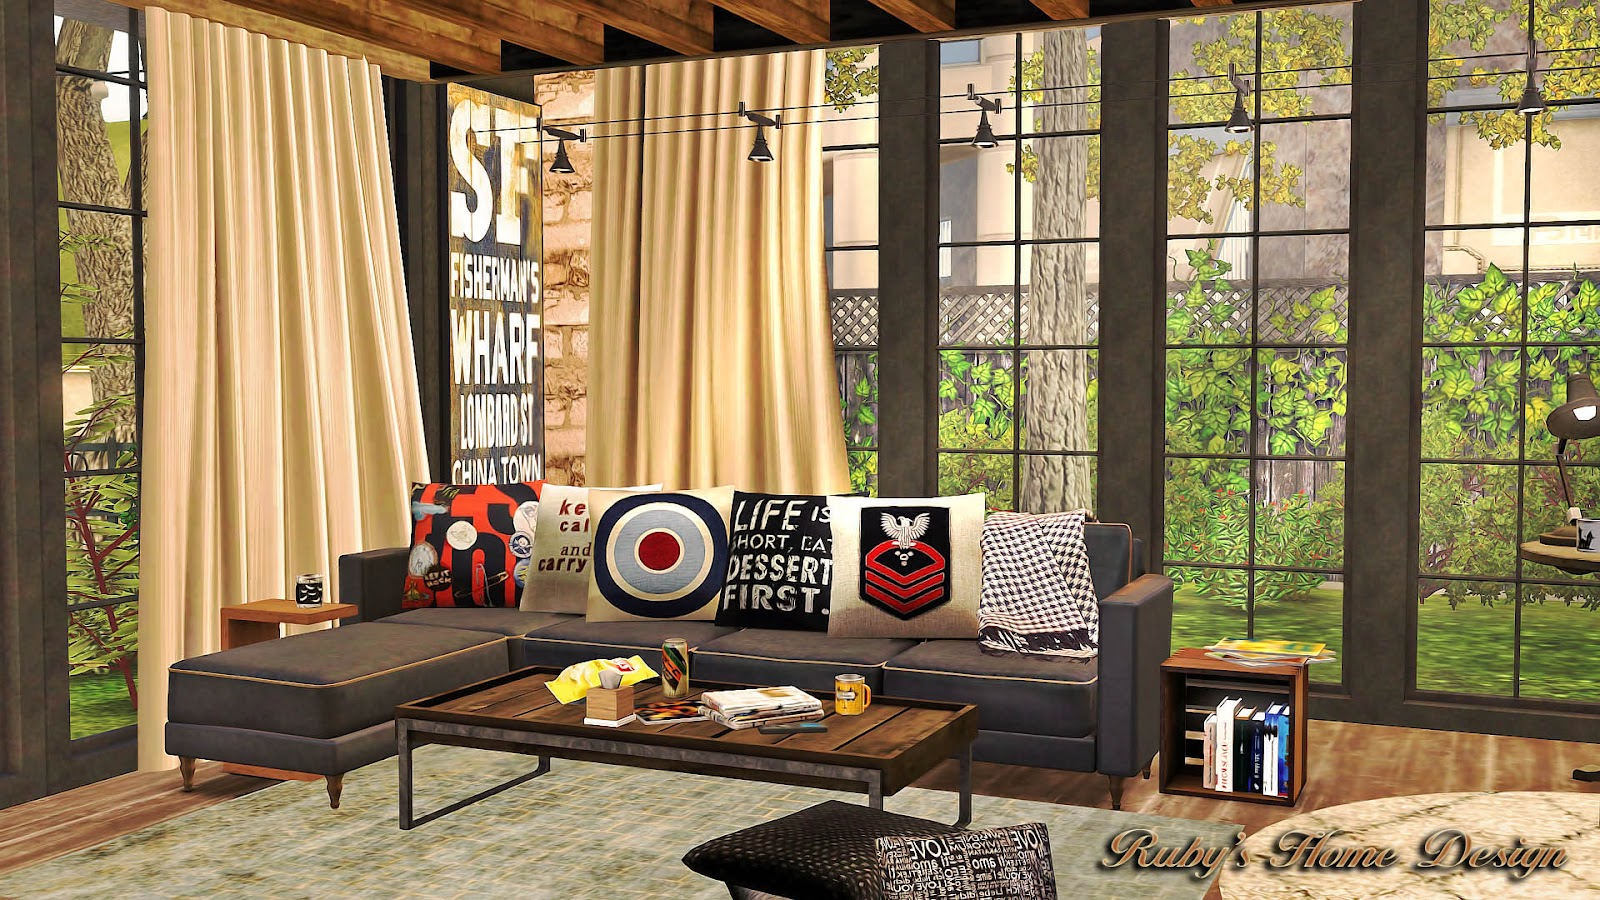 sims 3 cc furniture. 30x 20 Lot In St. Clair Sims 3 Cc Furniture I